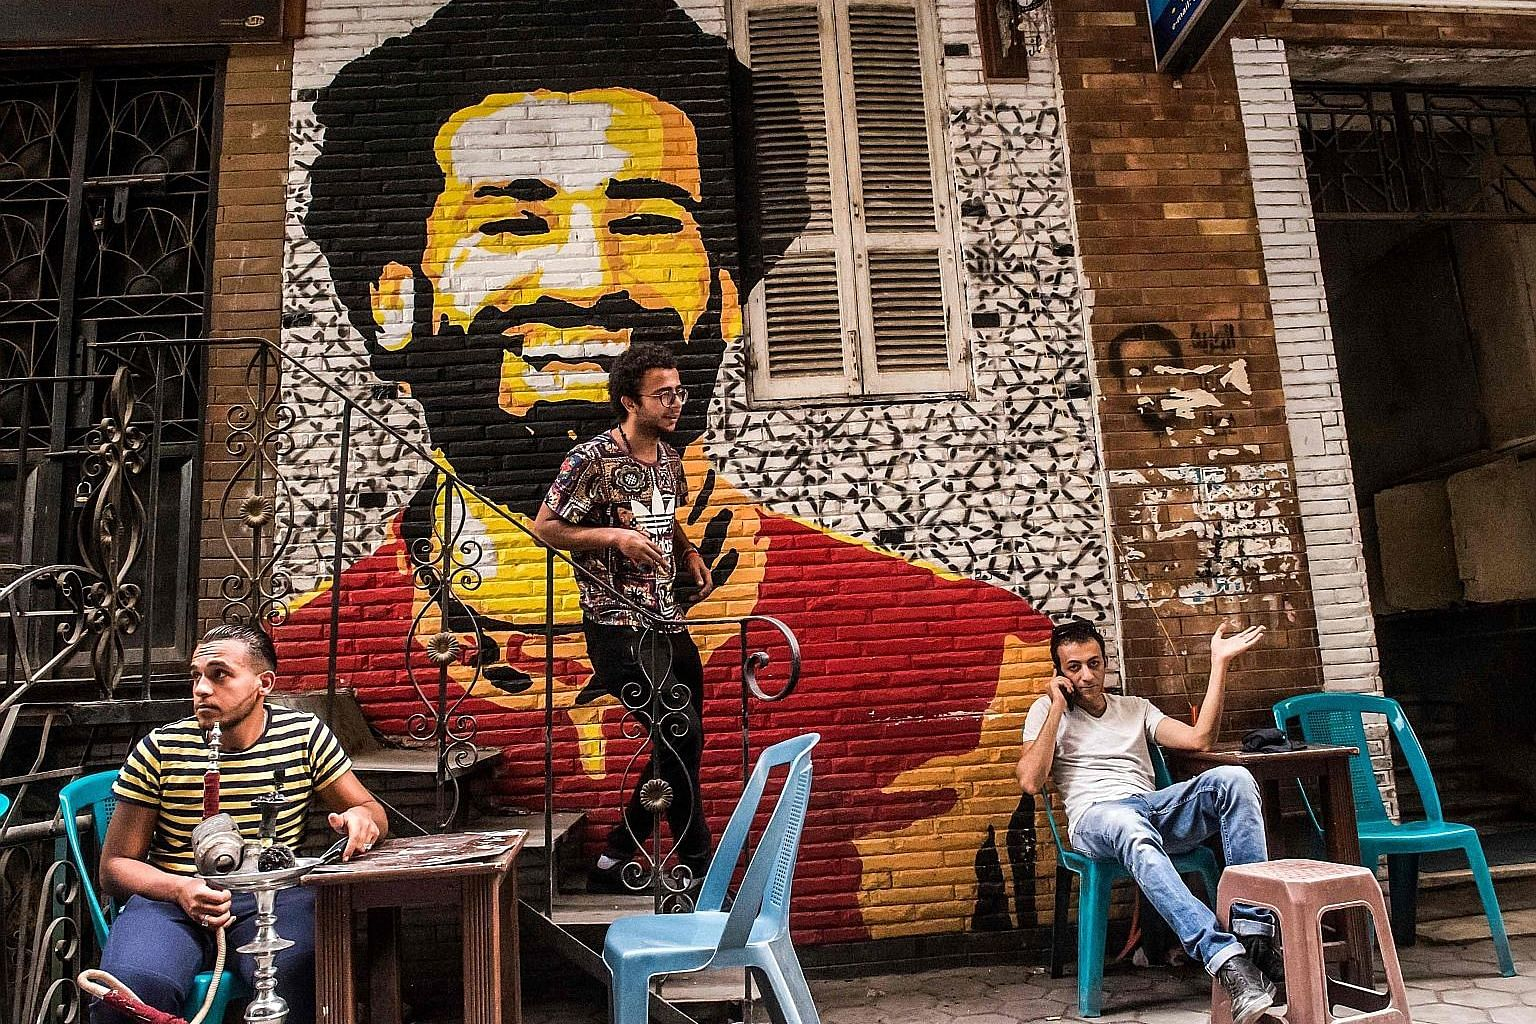 Ahmed Fathy, a 26-year-old Egyptian artist, on the stairs at an open-air cafe in Cairo. He painted the mural depicting the smiling face of Liverpool forward Mohamed Salah.